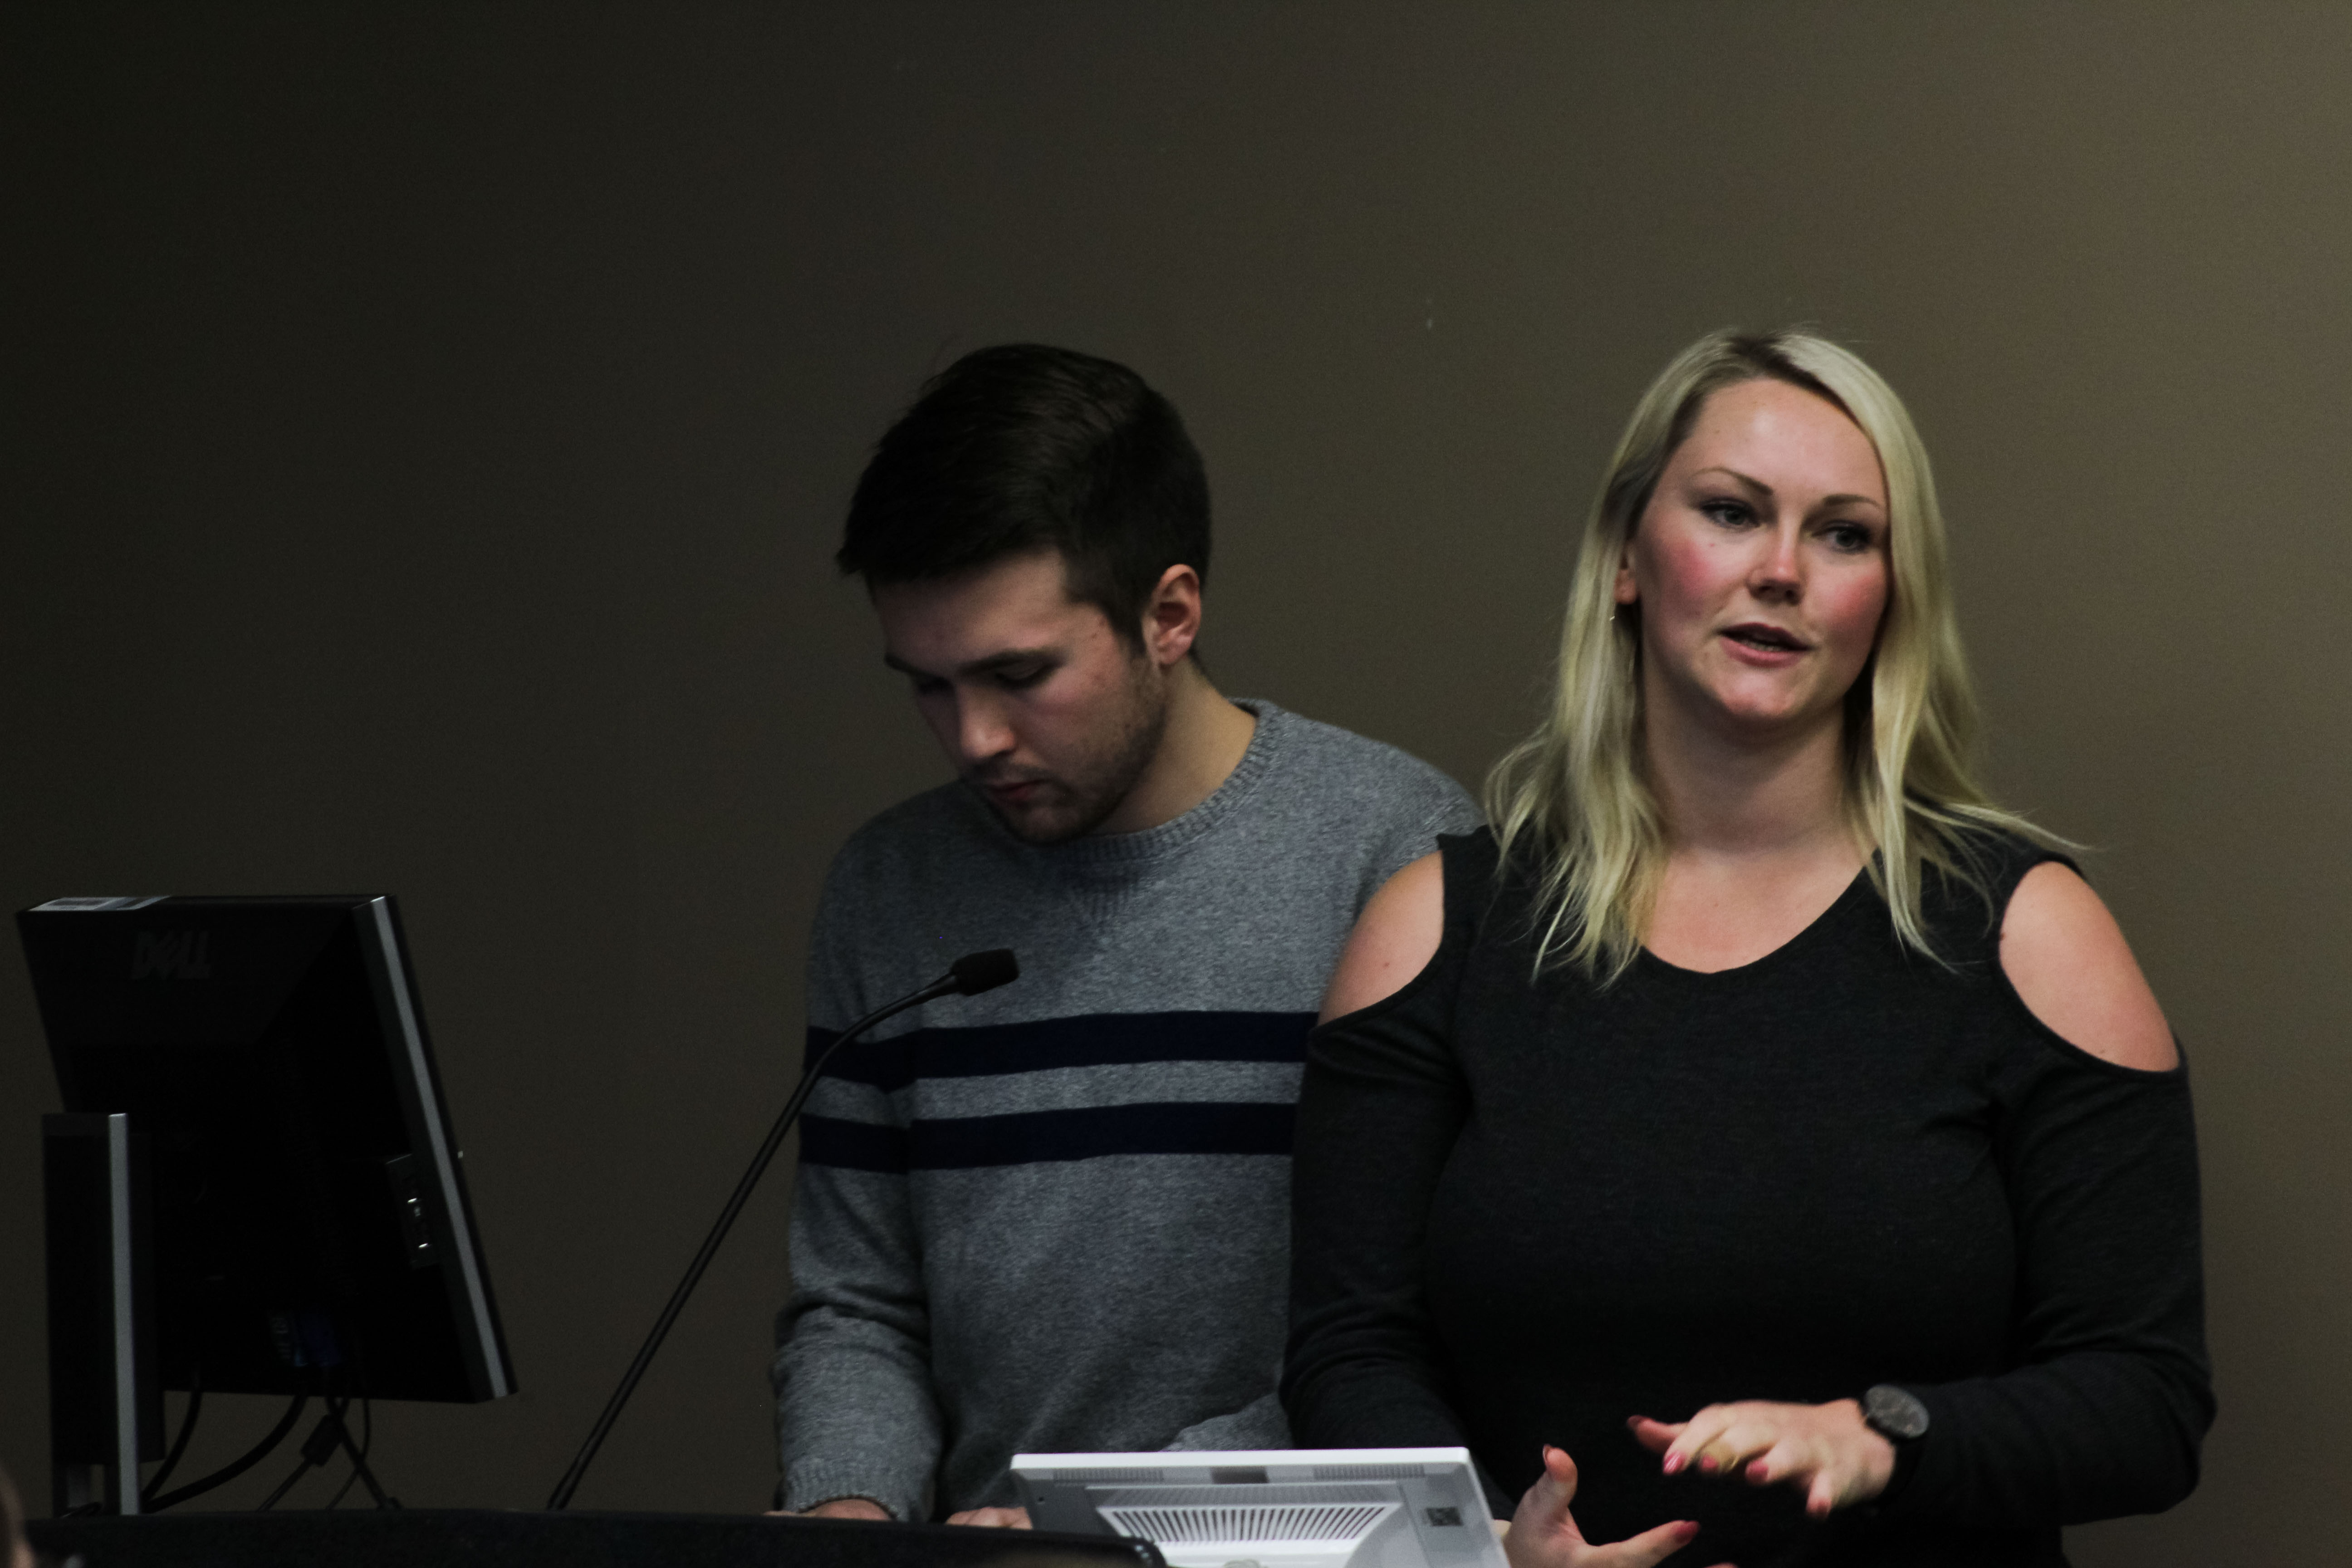 Senate Policy Committee Chair Pat McKenna and Vice President Aimee Bosman report on election procedures at the Student Senate meeting on February 5, 2018 (Photo Claire Bickers / The Gettysburgian)